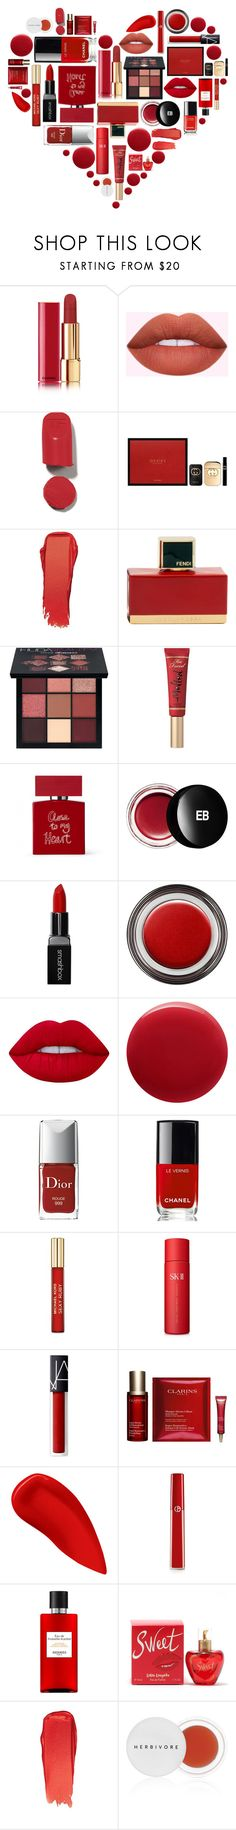 """""""𝔏𝔬𝔳𝔢 𝔱𝔬 𝔪𝔶𝔰𝔢𝔩𝔣"""" by l33l ❤ liked on Polyvore featuring beauty, Chanel, Gucci, Bobbi Brown Cosmetics, Fendi, Huda Beauty, Too Faced Cosmetics, Bella Freud, Edward Bess and Smashbox"""